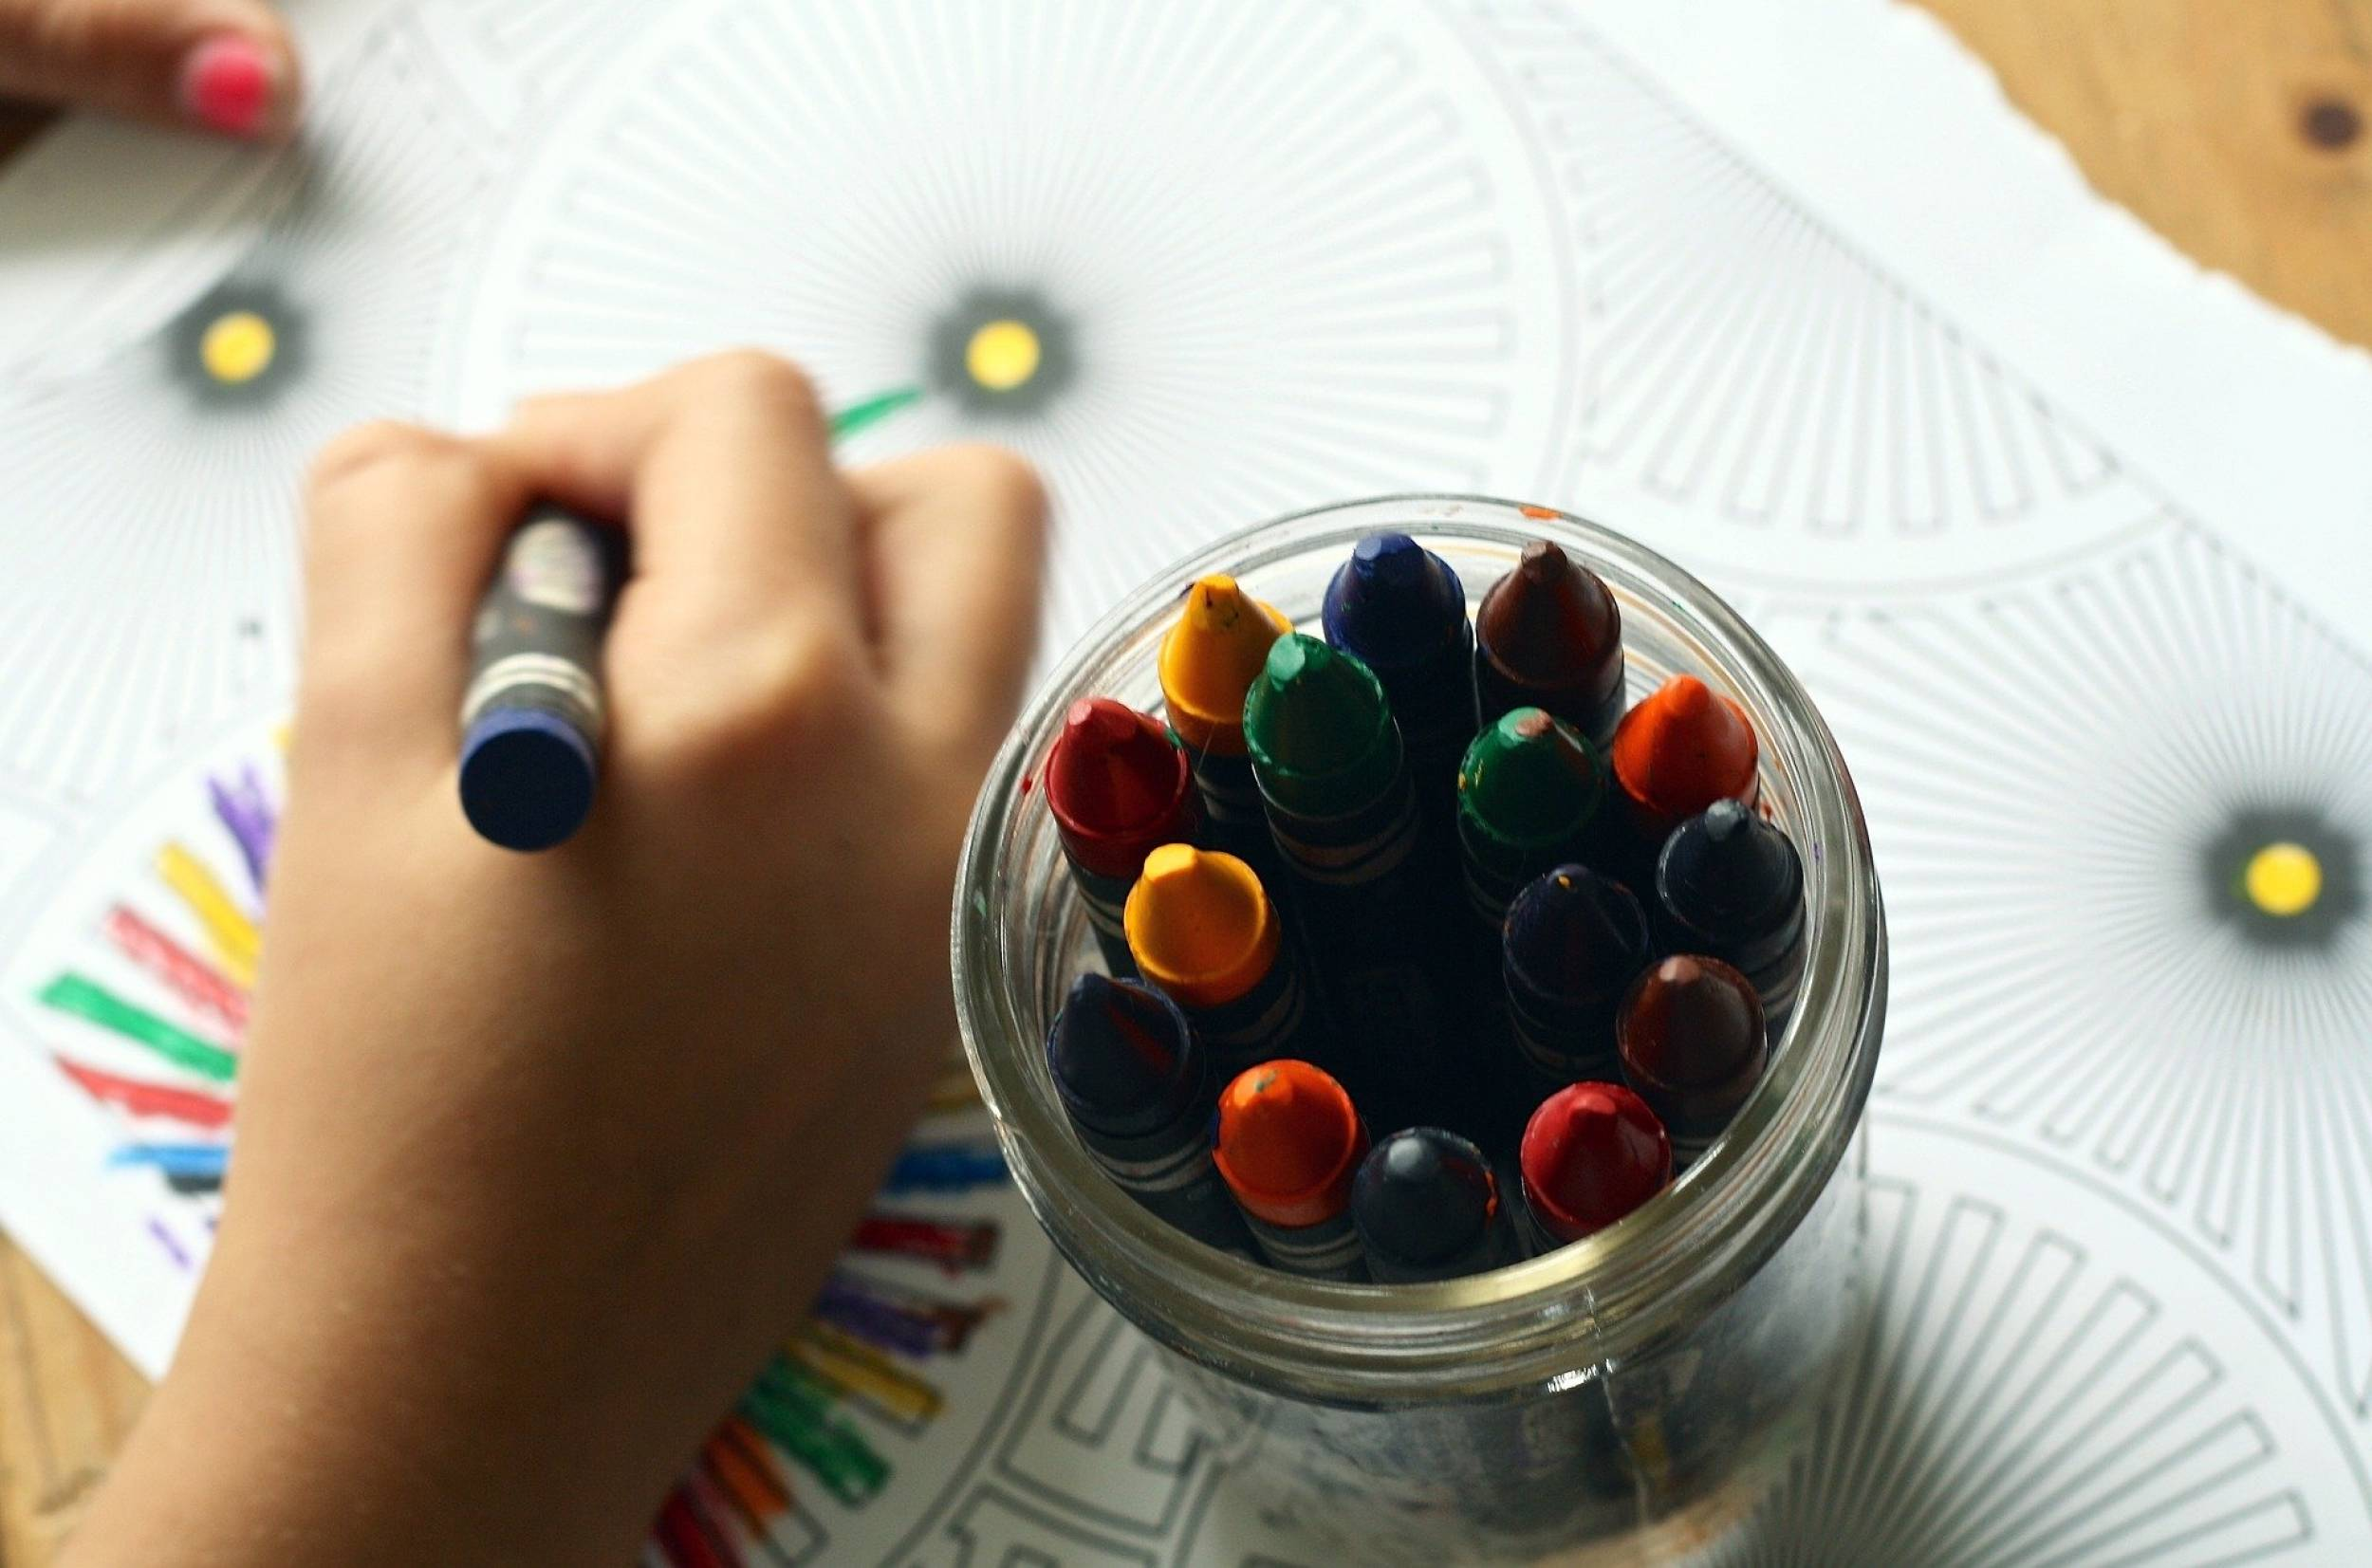 PFS - crayons-1445053_1920 alice ponce